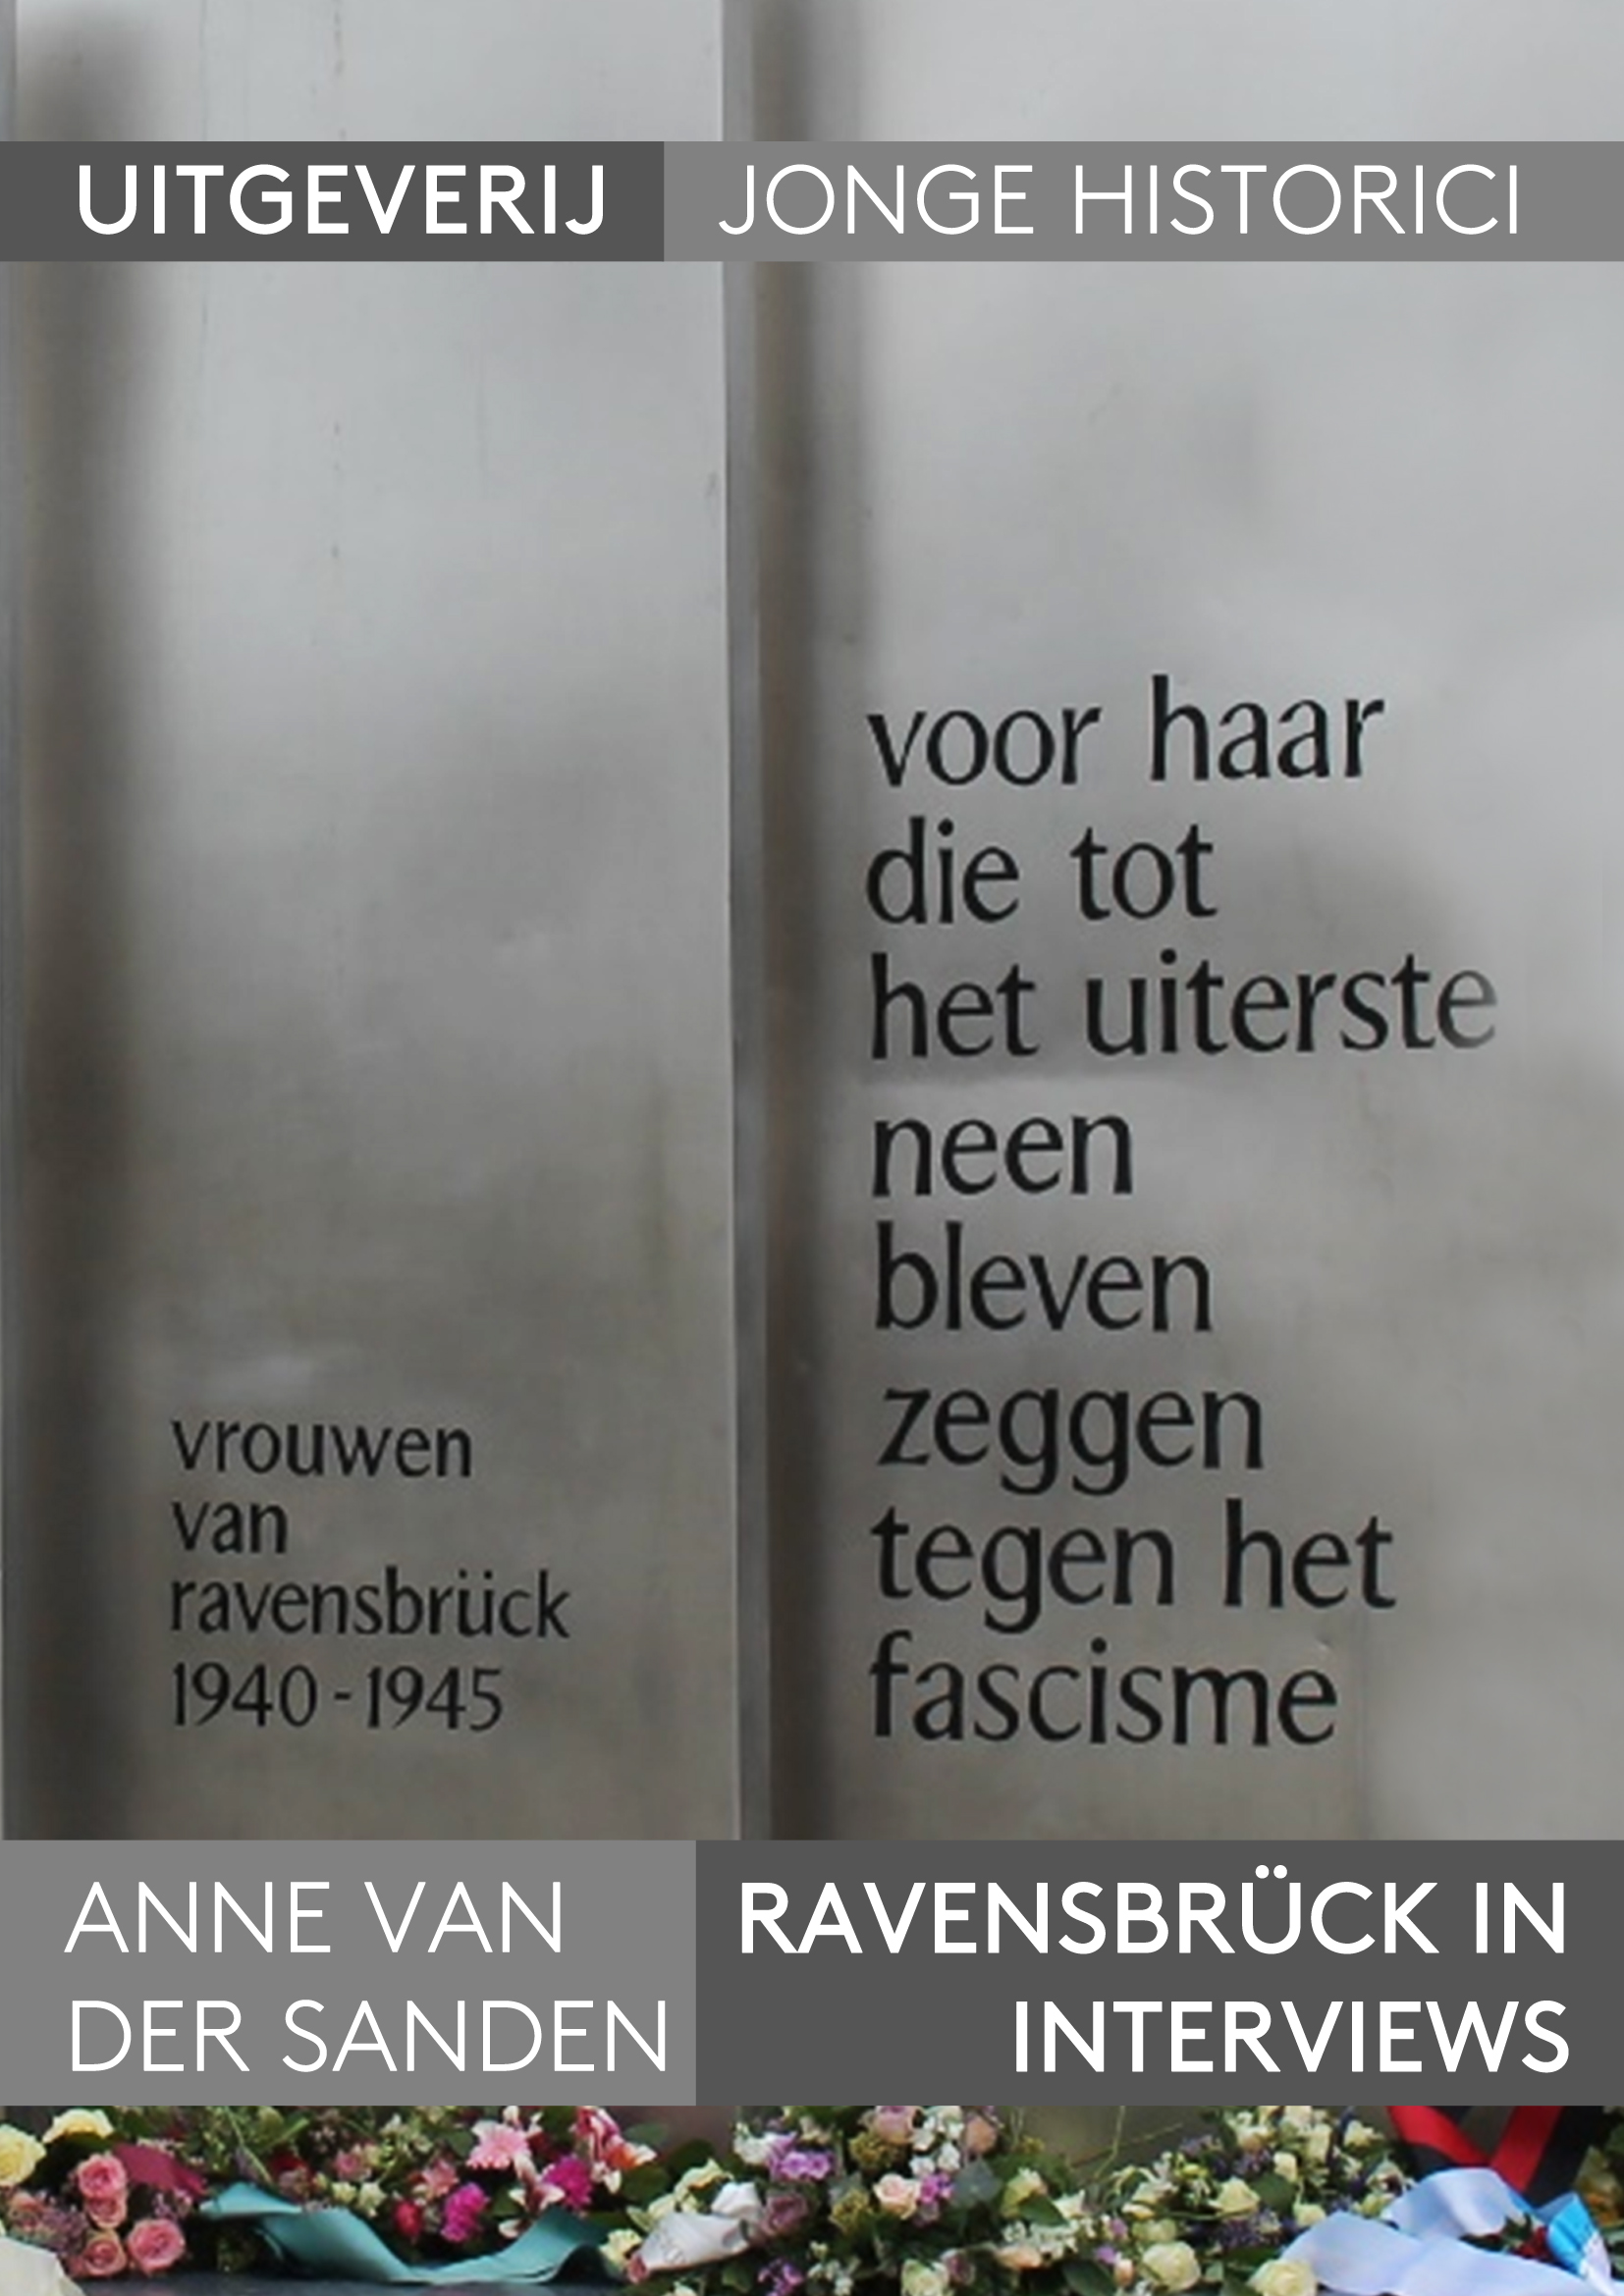 Longread: Anne van der Sanden, Ravensbrück in interviews